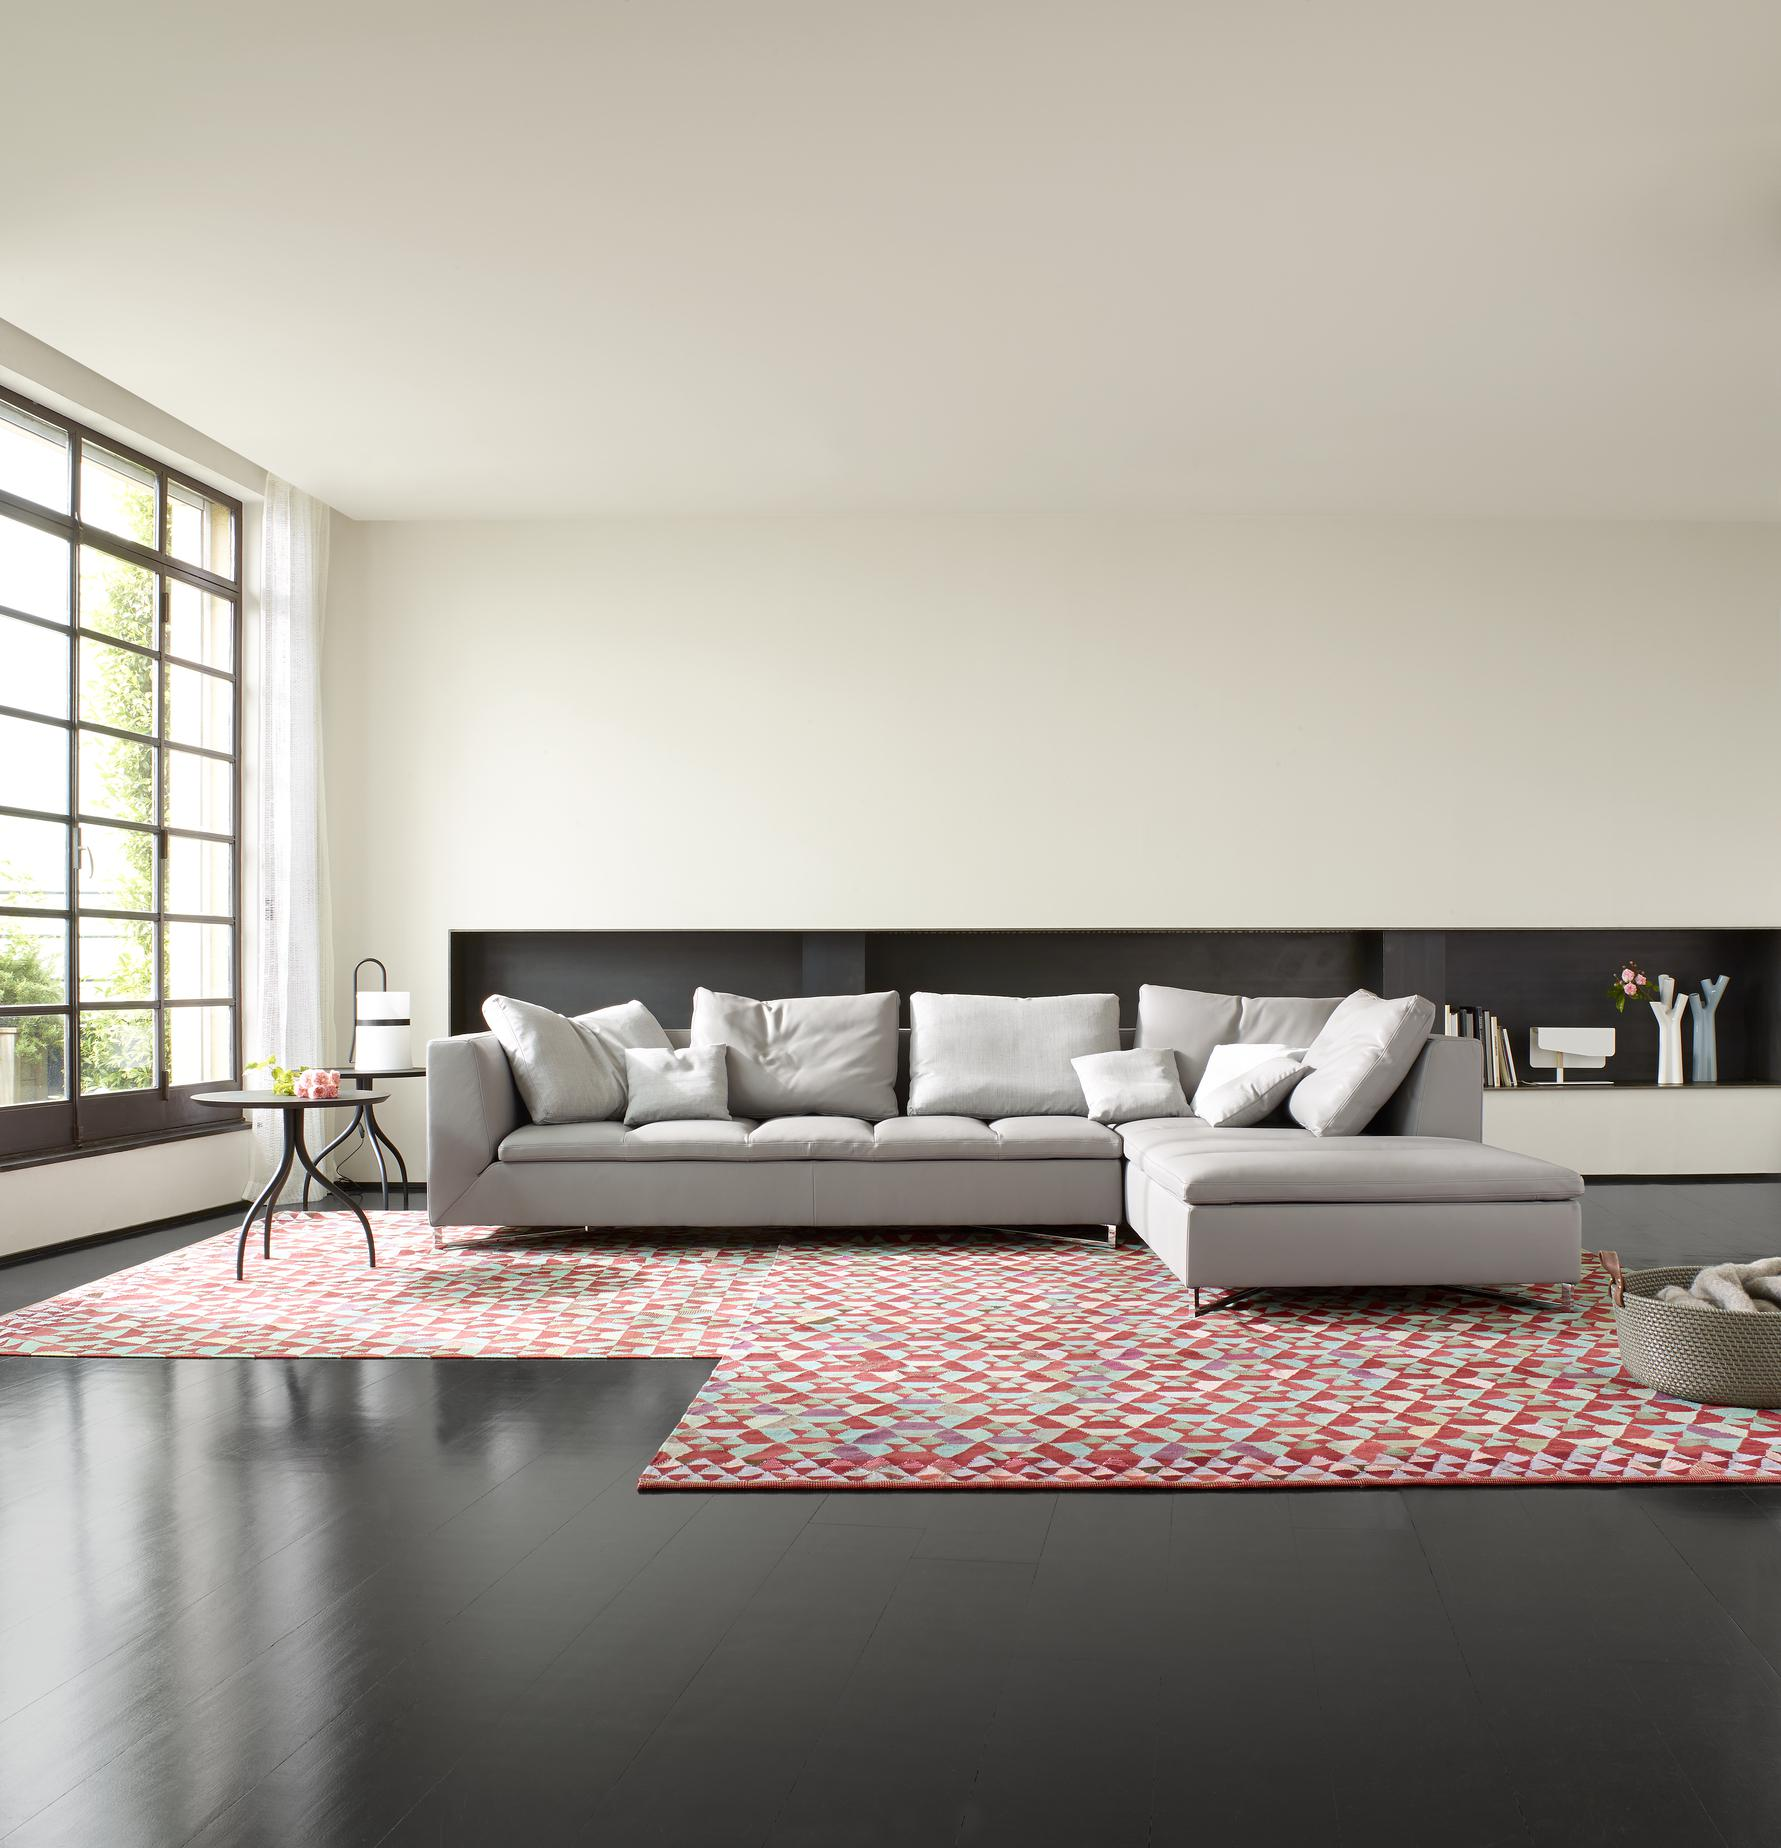 feng sofas from designer didier gomez ligne roset official site. Black Bedroom Furniture Sets. Home Design Ideas